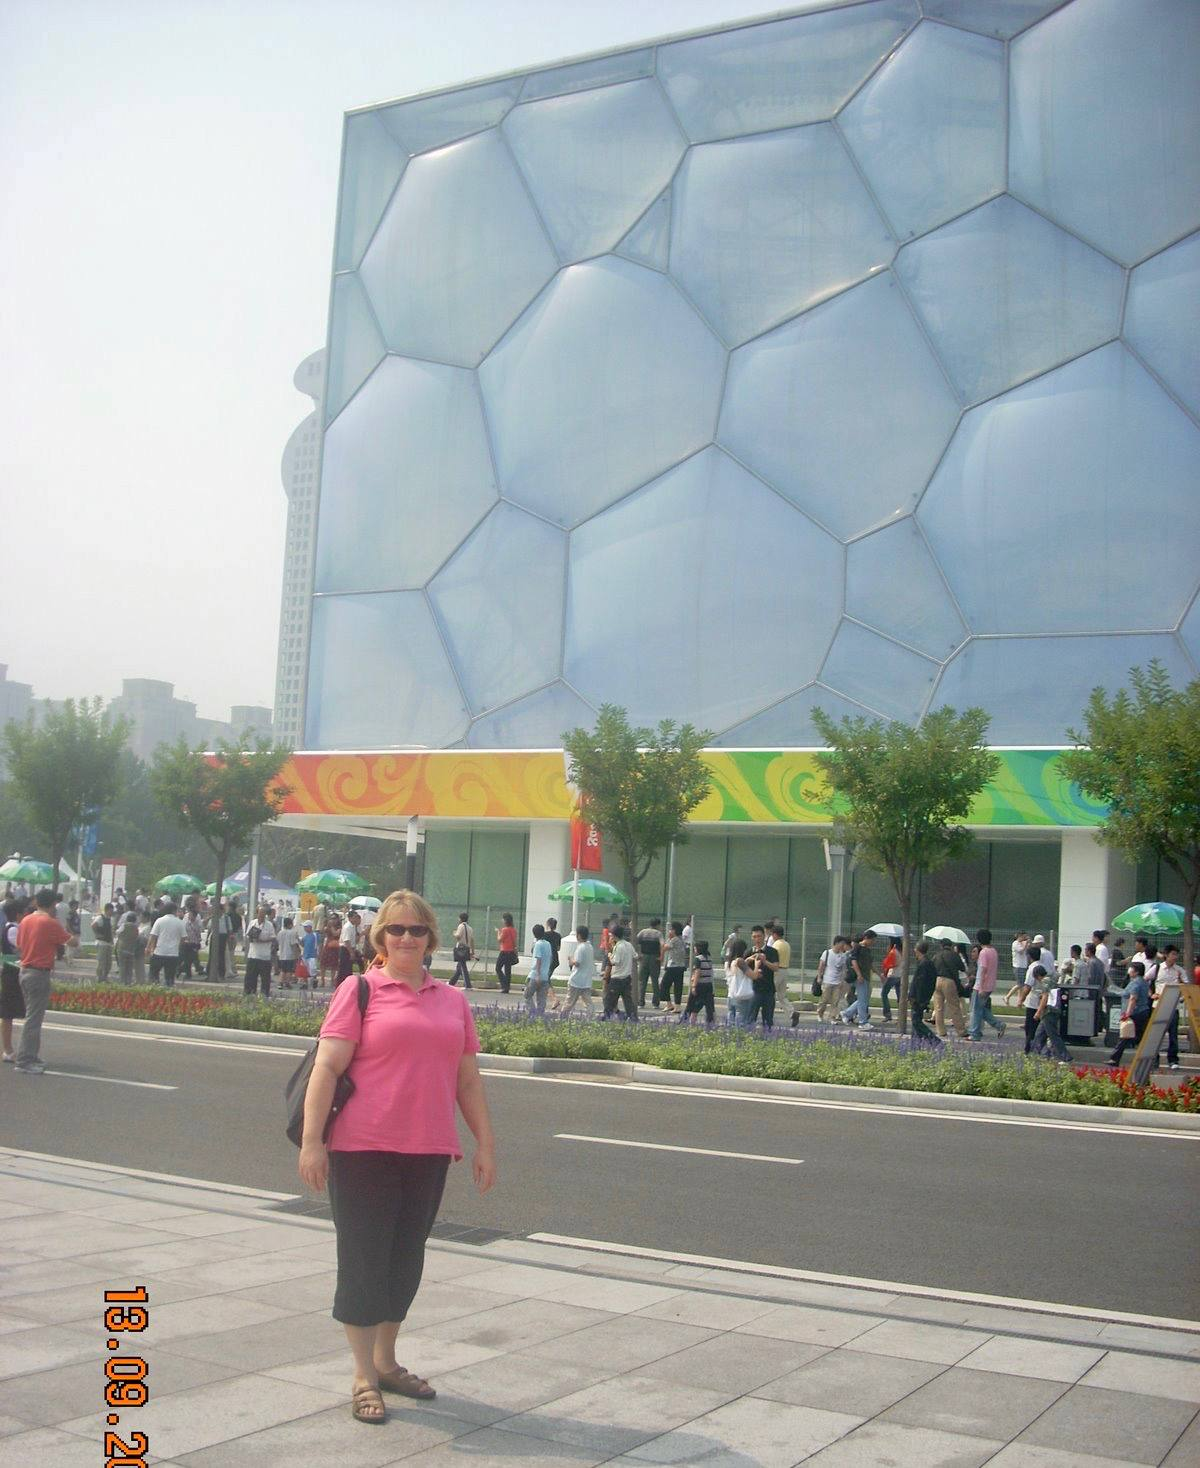 Lesley outside the Water Cube.